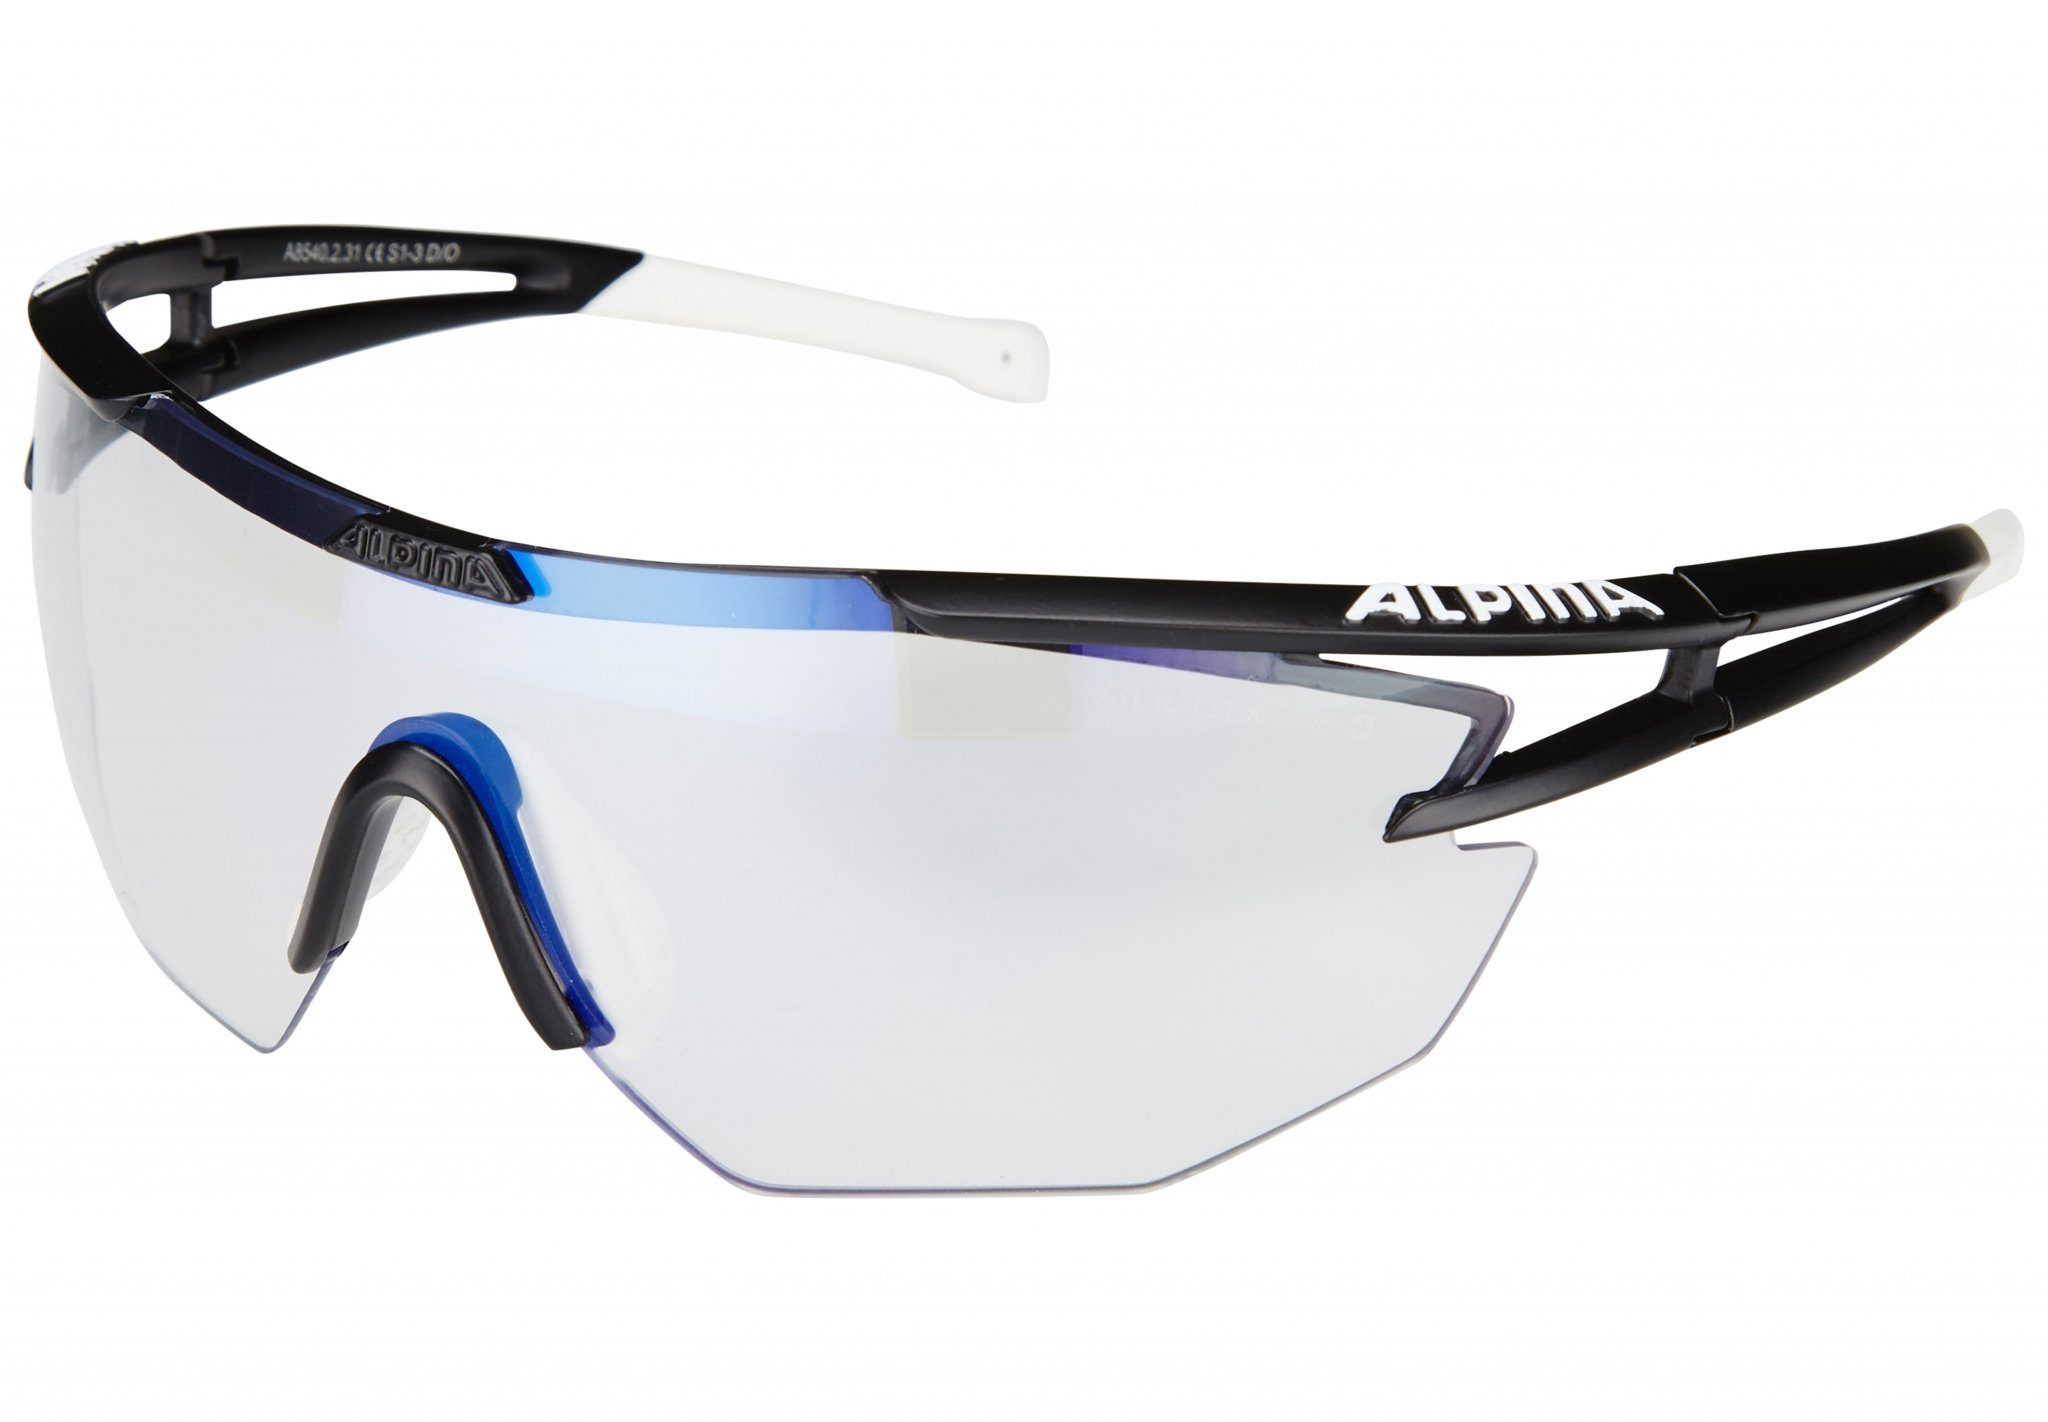 Alpina Radsportbrille »Eye-5 Shield VLM+«